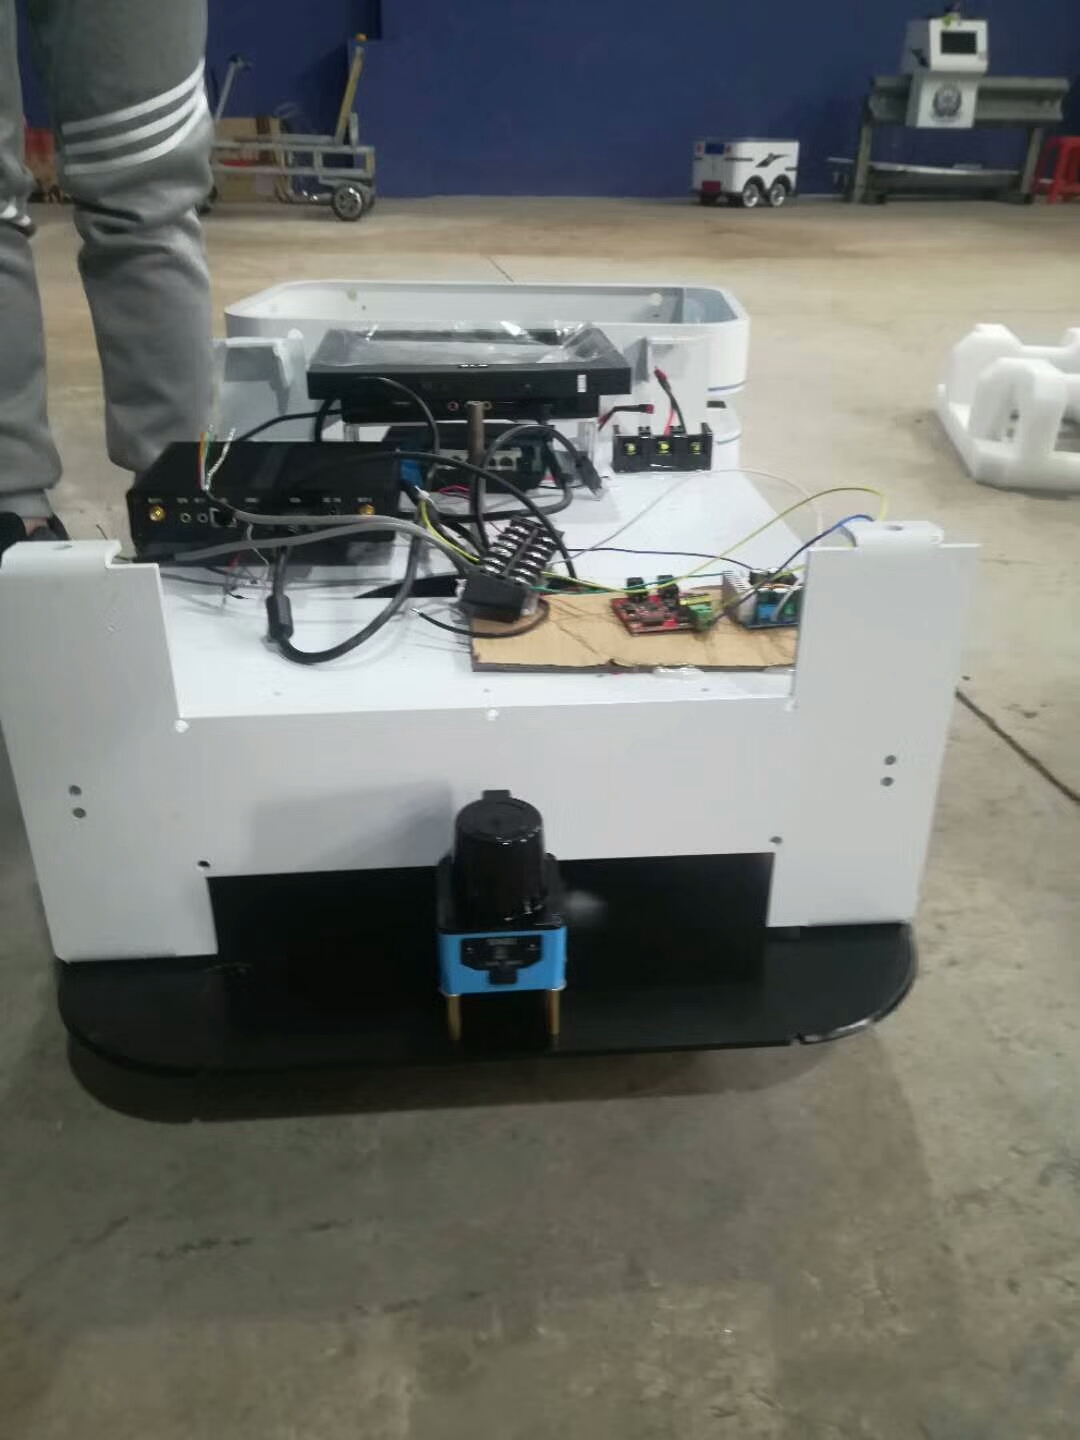 SDKELI laser radar application for AGV